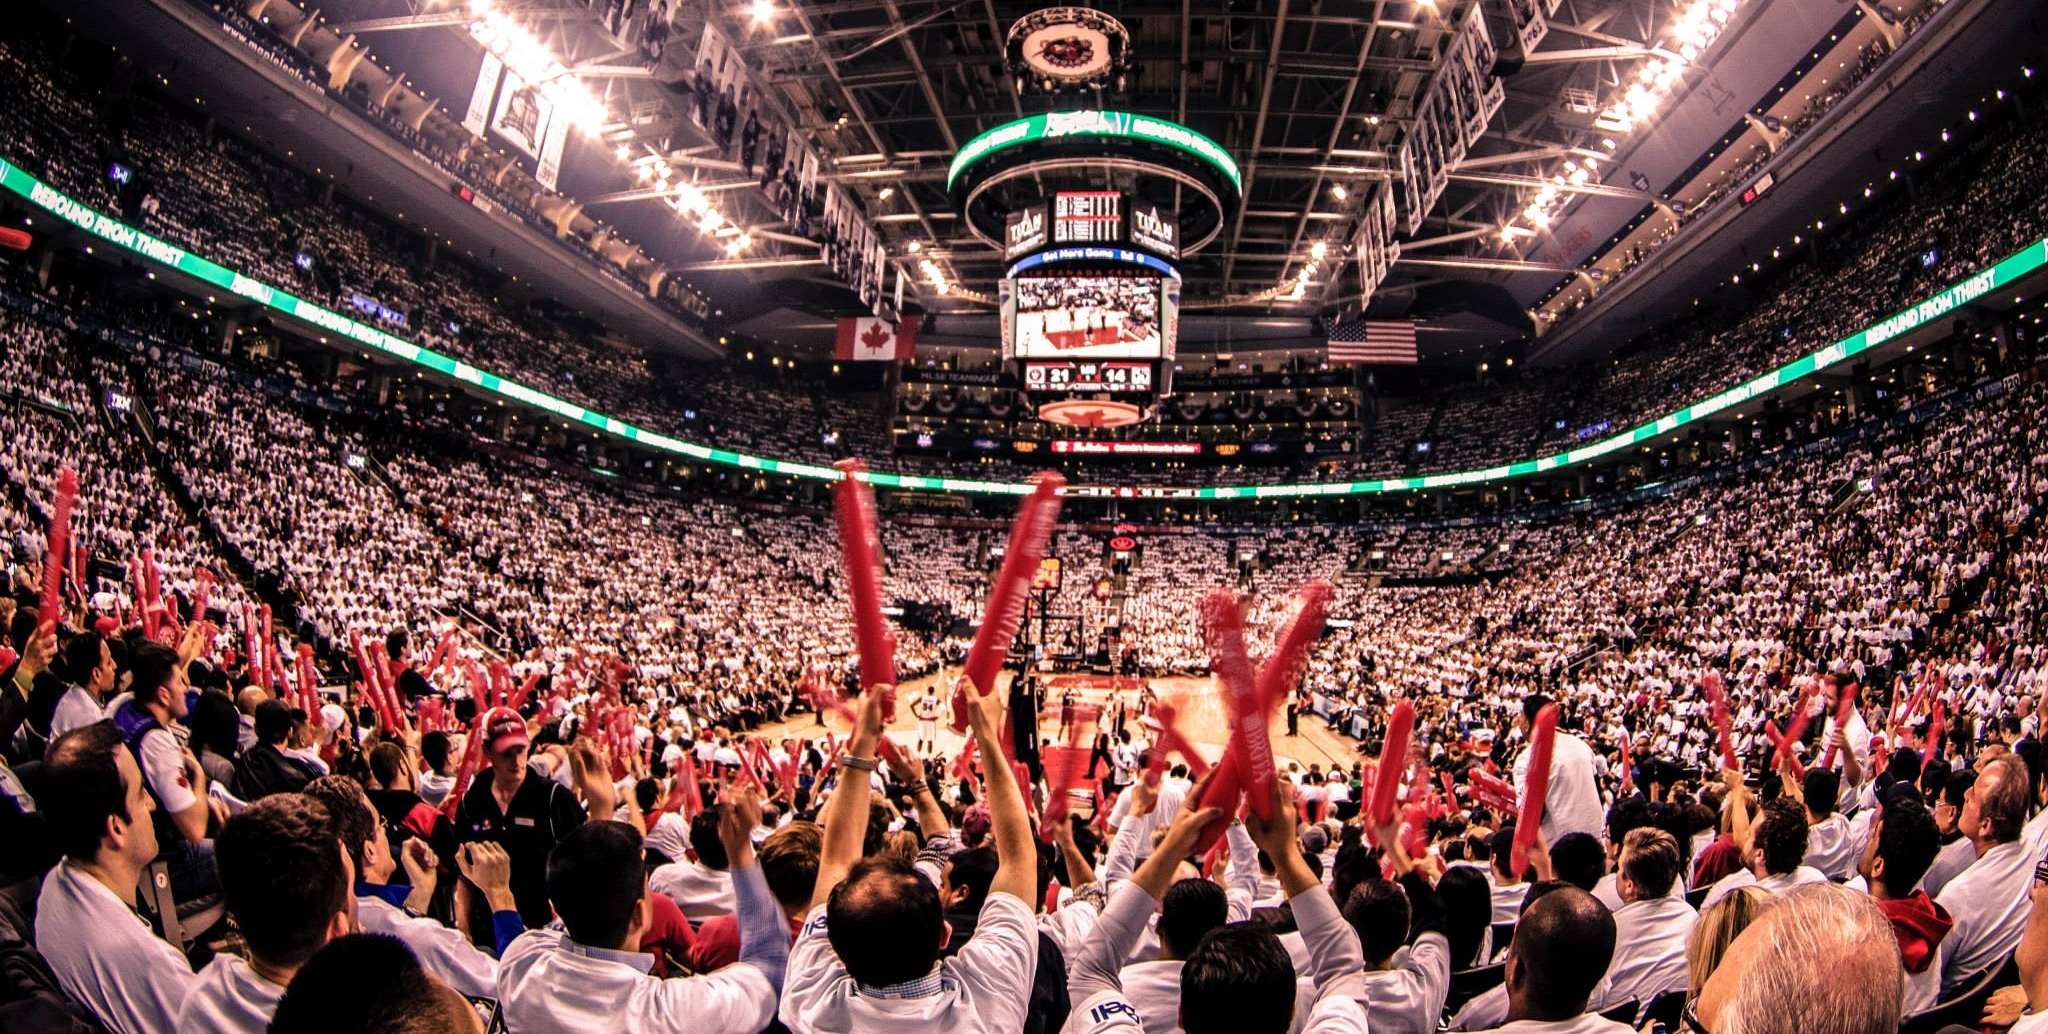 News Roundup: Changing Corporate Culture, Mental Wellness, and Raptors Fever